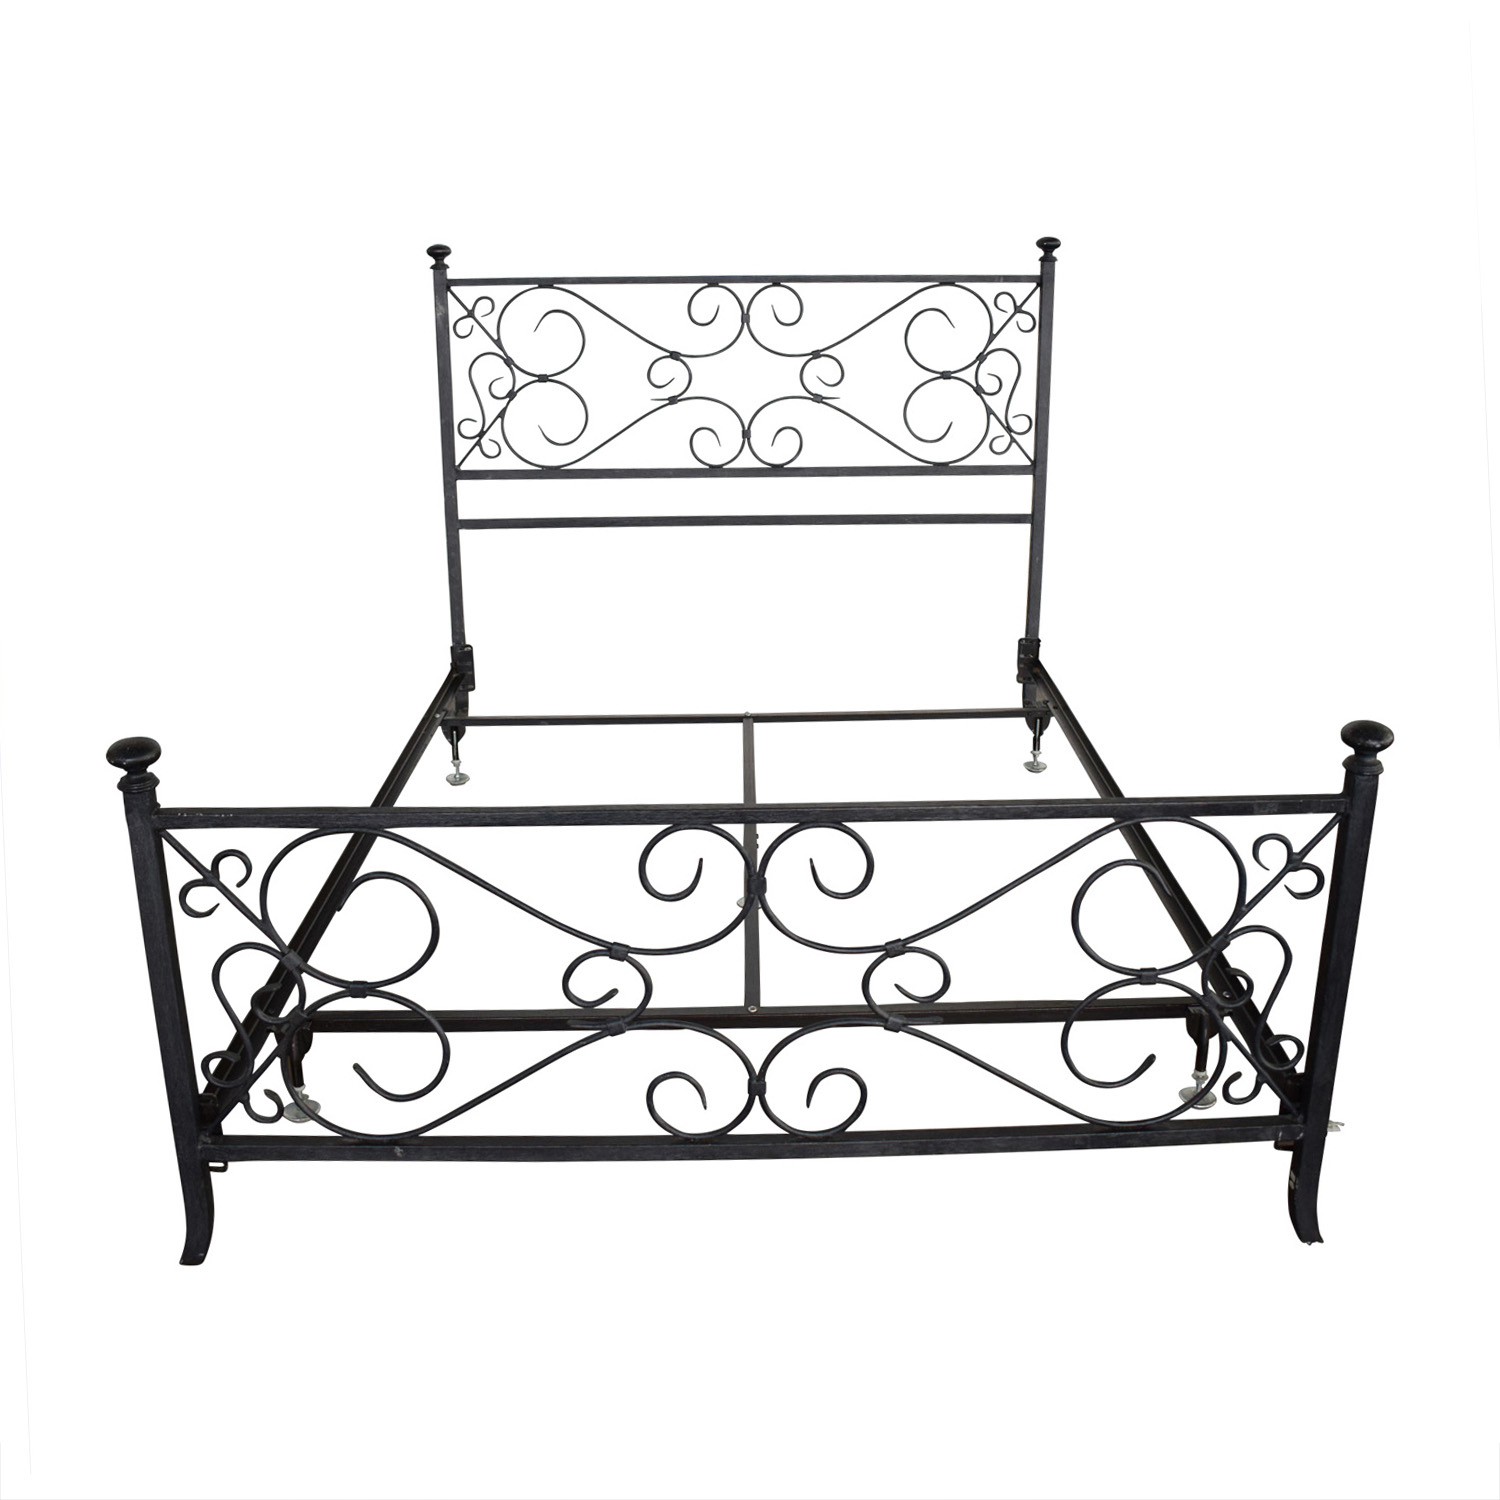 Pottery Barn Pottery Barn Wrought Iron Queen Bedframe on sale